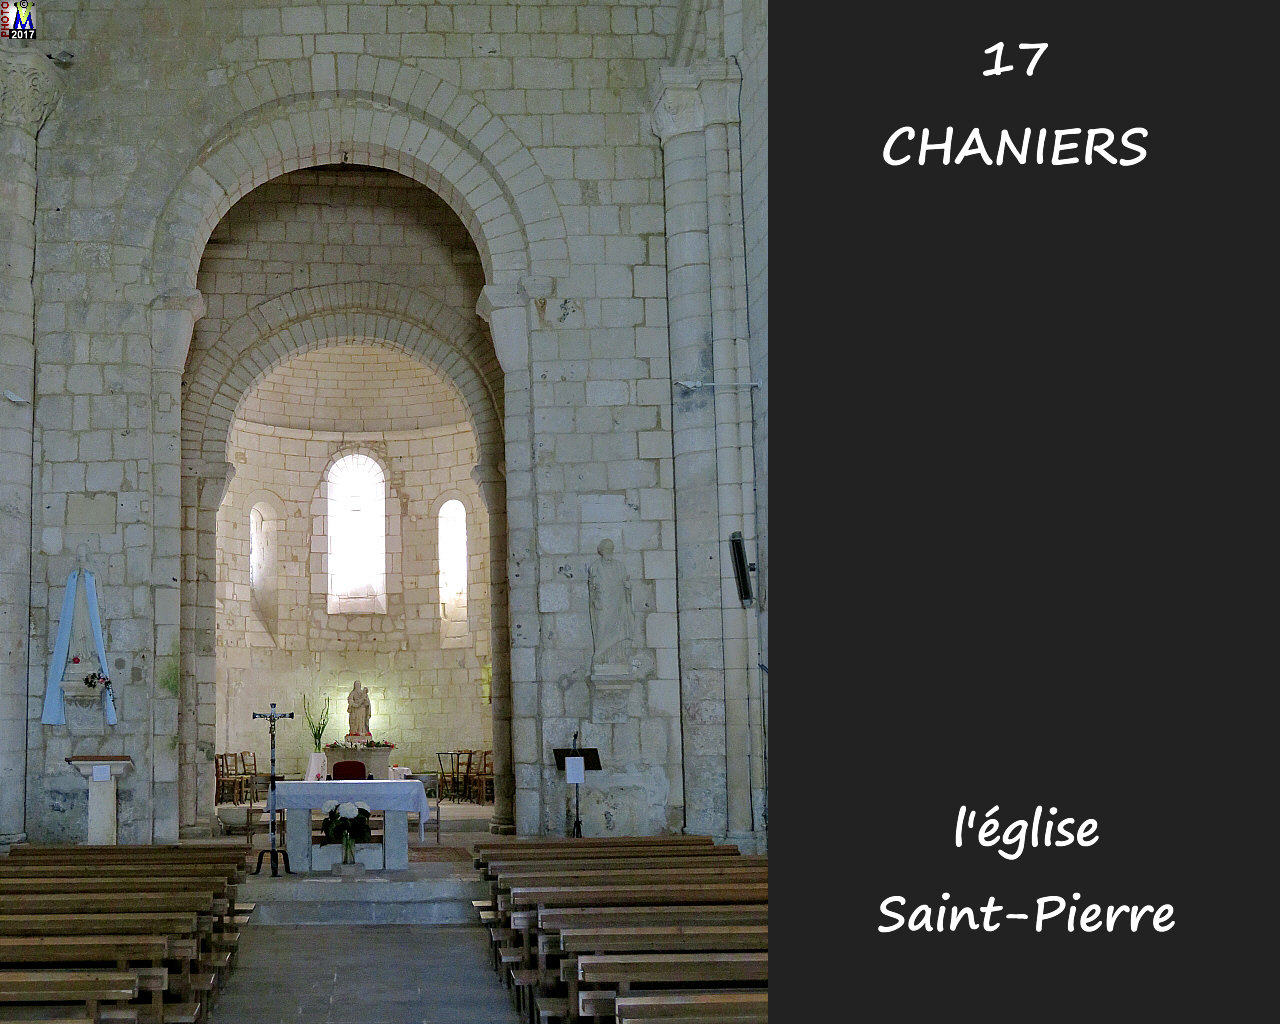 17CHANIERS_eglise_1106.jpg